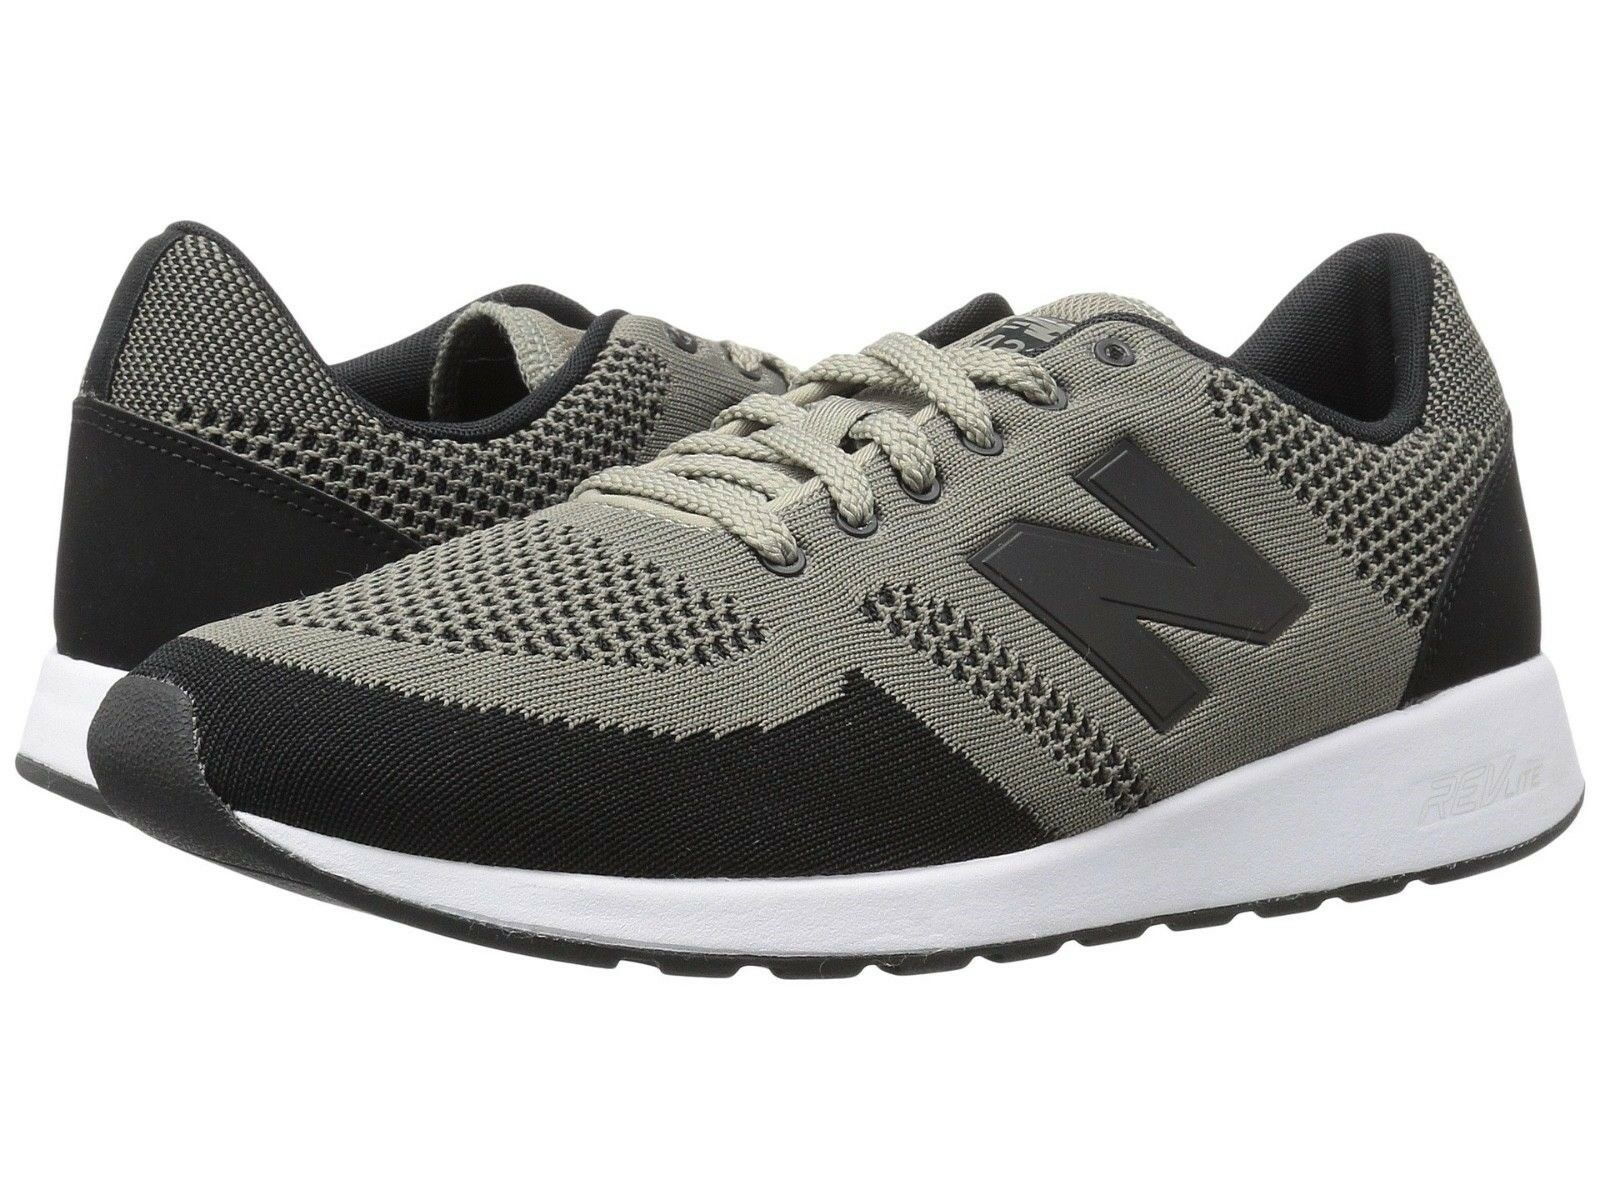 New Balance Mens Athletic Sneakers shoes Classic Mesh Upper Taupe Black MRL420TA